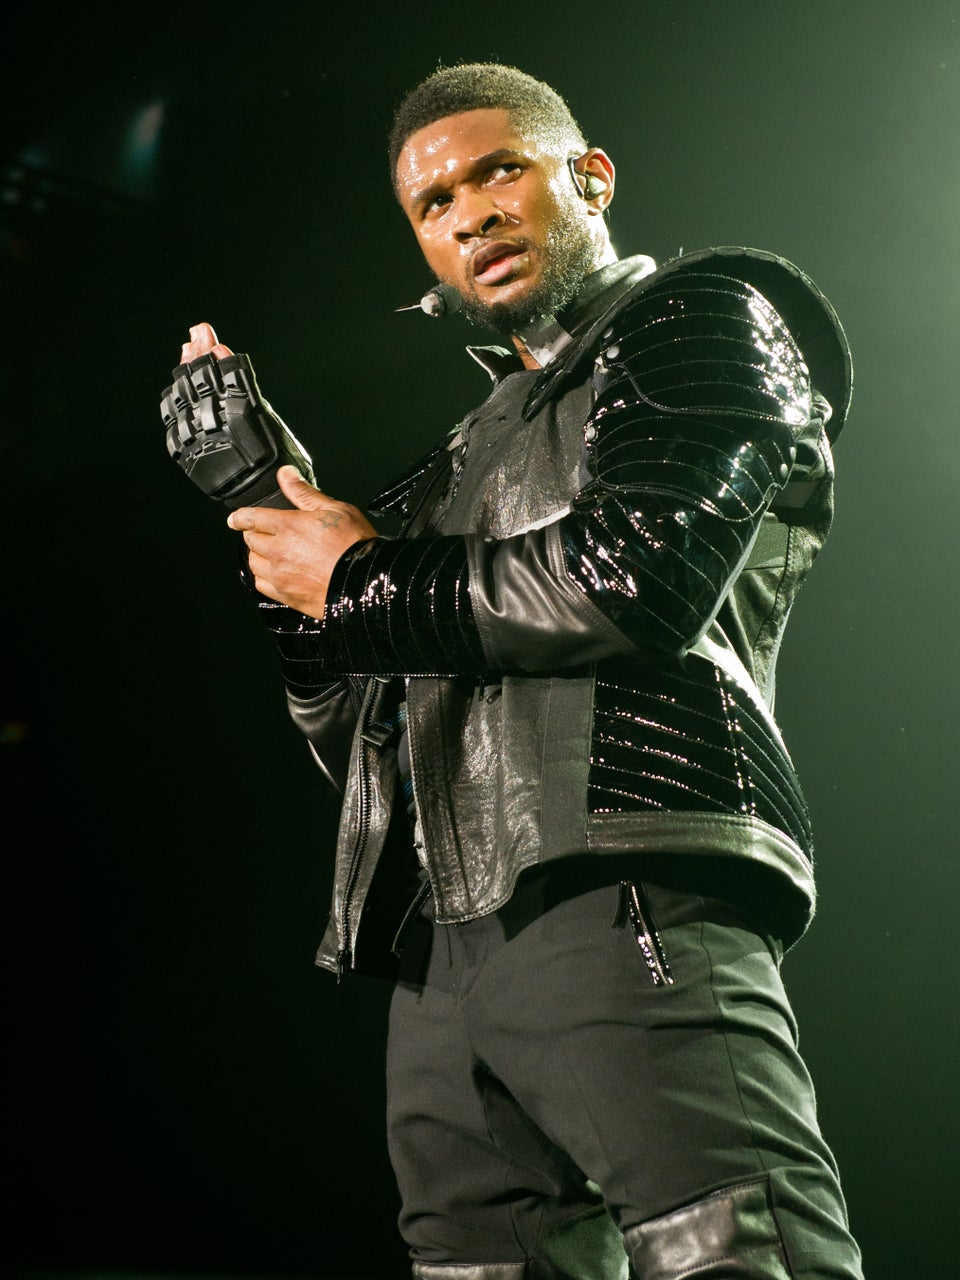 Usher to Live Stream Concert, Will Allow Fans to Dance on Stage